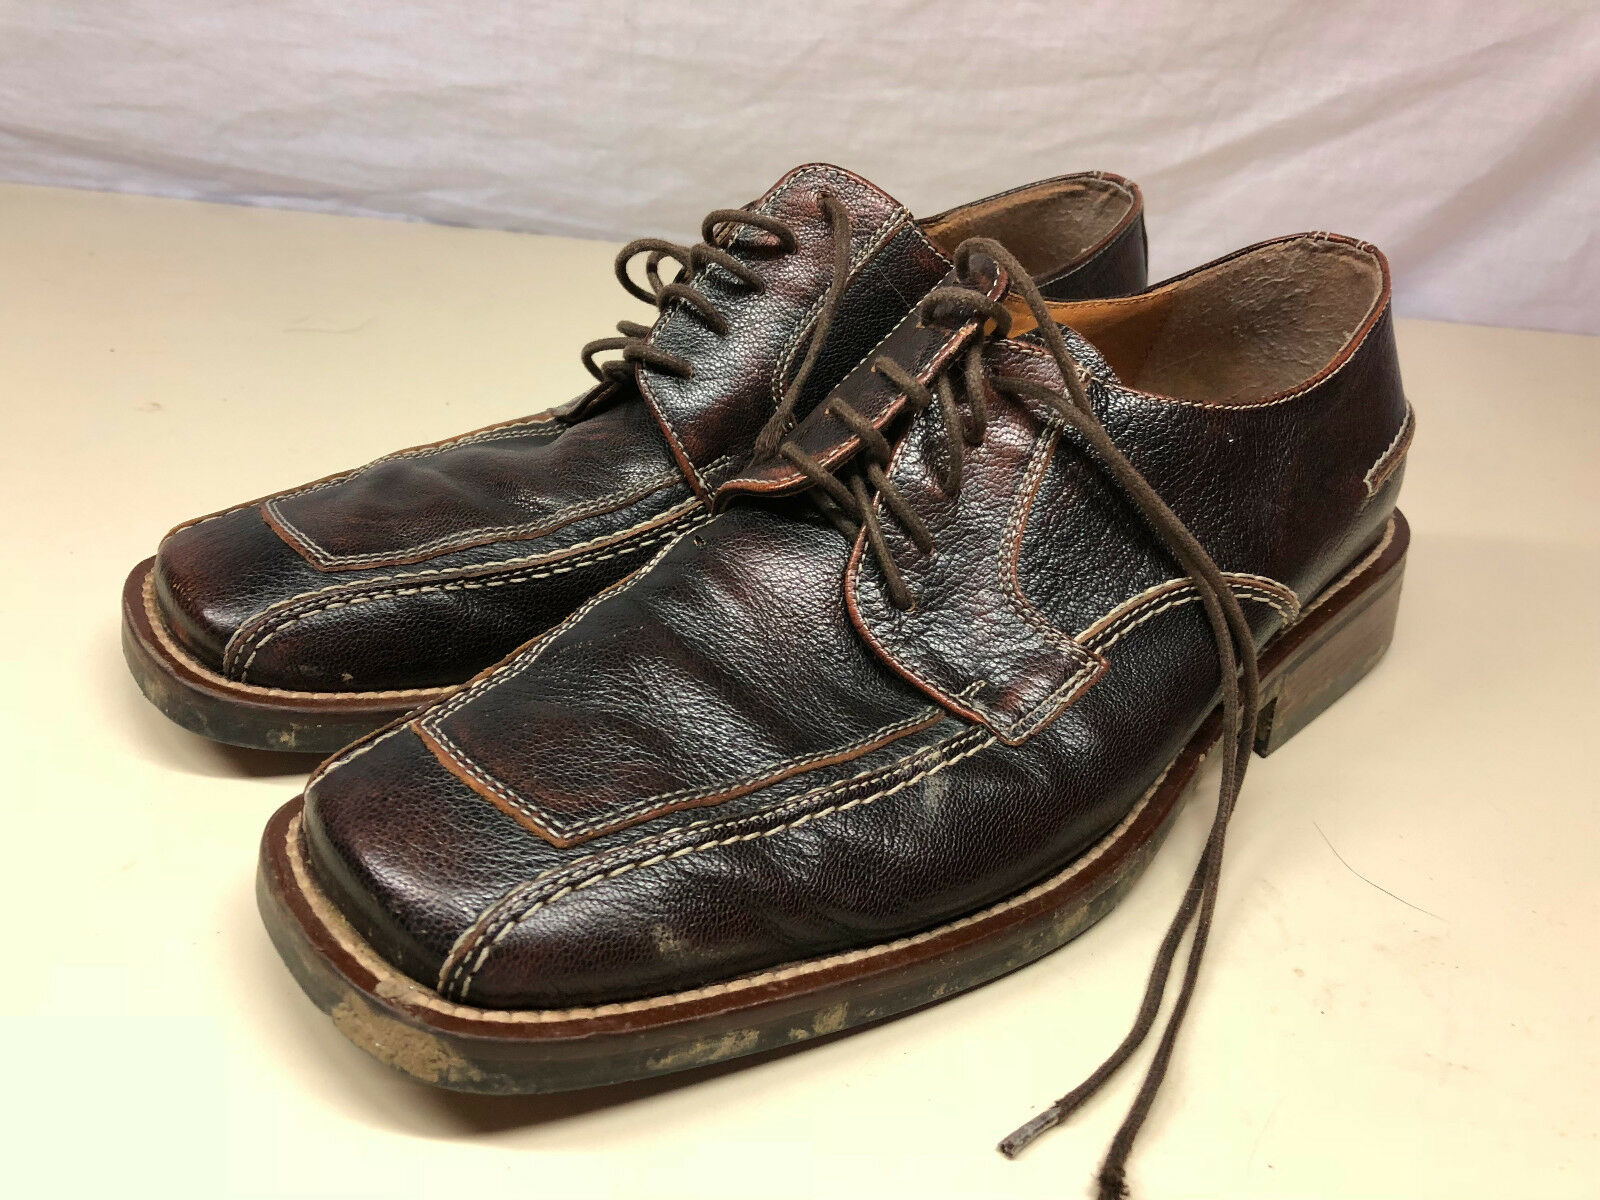 Dolcis Dark Brown Leather Lace Tie Up Men's shoes Size 41 7.5 Business Attire